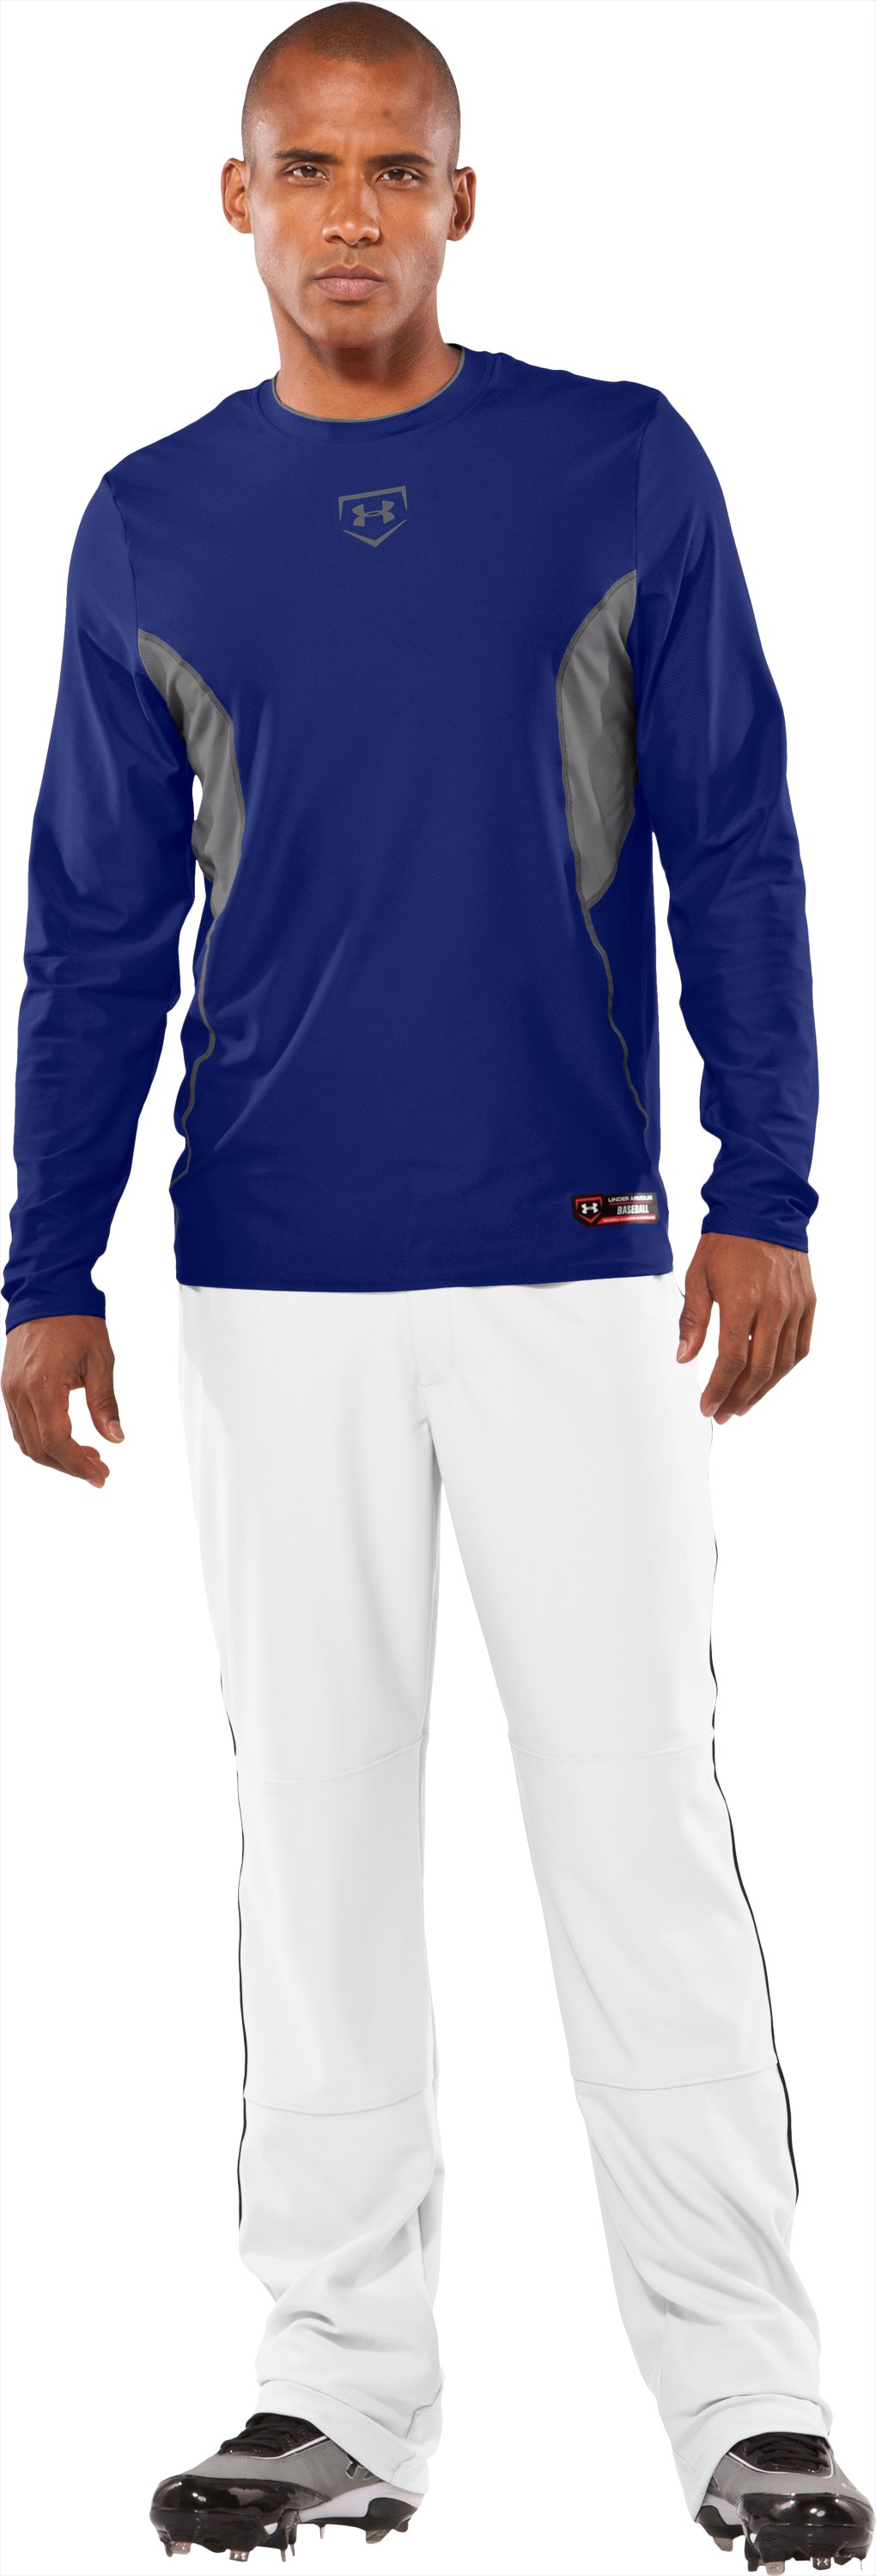 Men's Baseball Gameday Long Sleeve Shirt, Royal, zoomed image